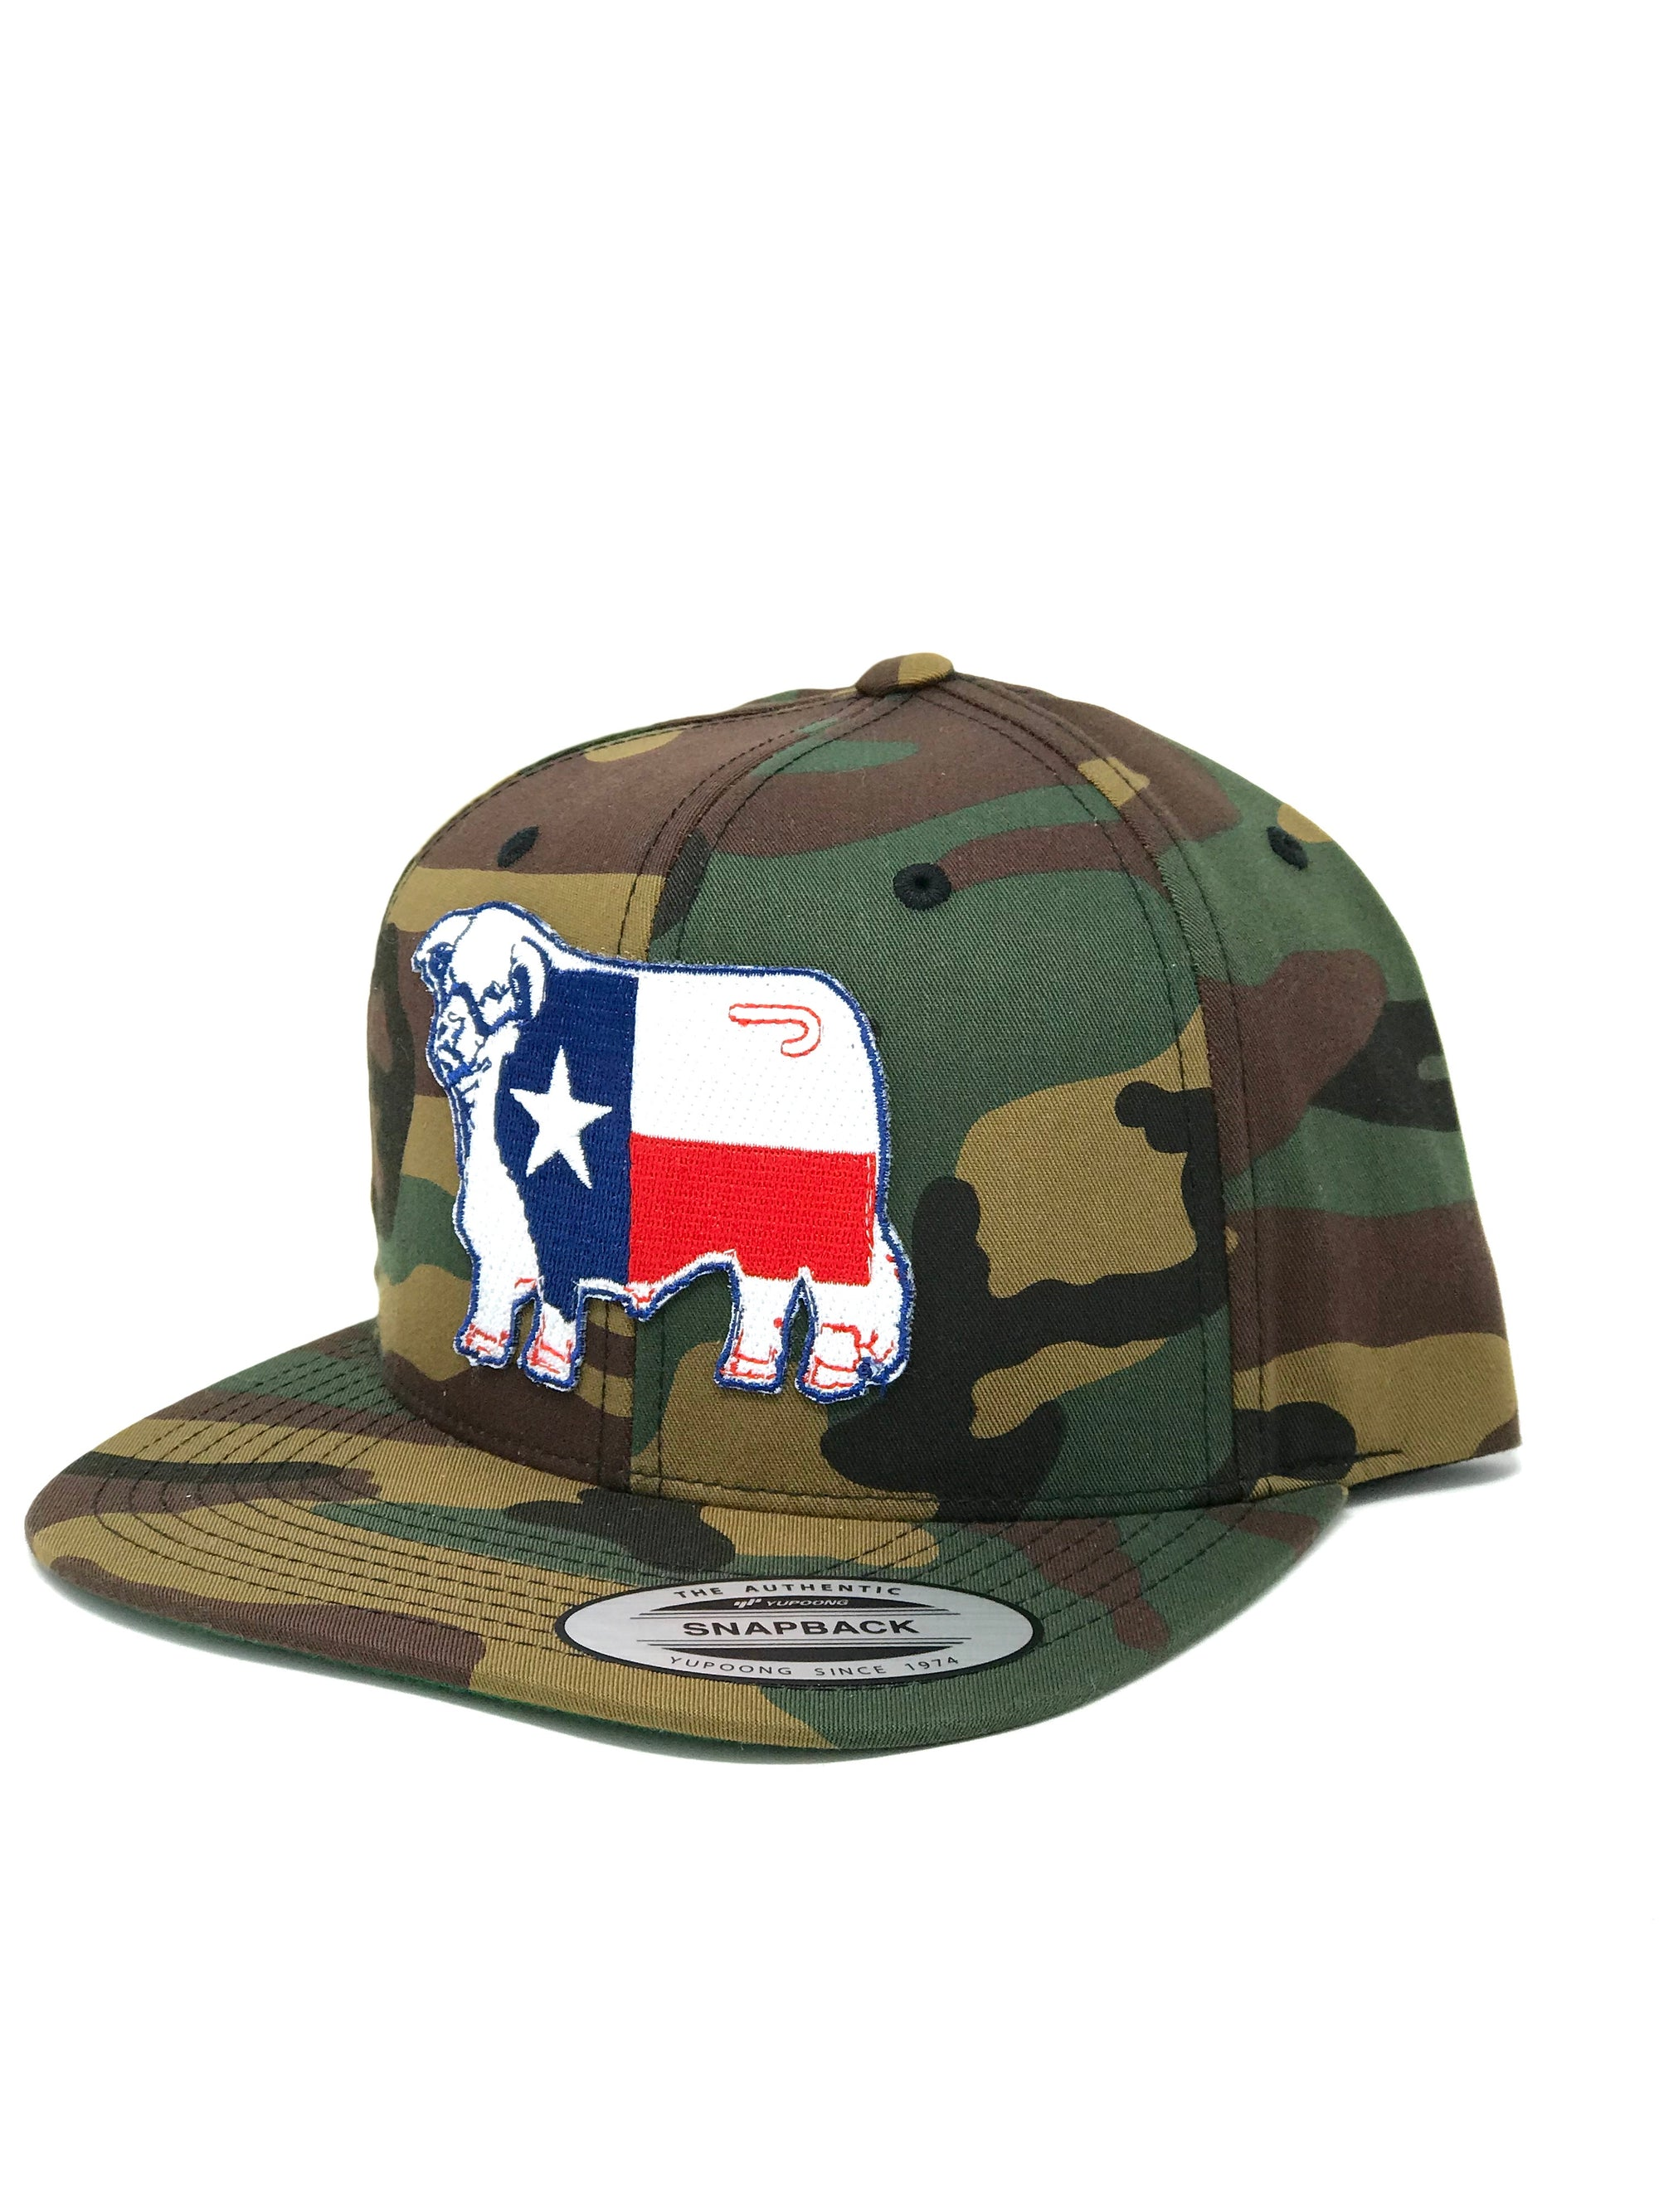 "Lazy J Camo 4"" Flatbill Hereford Texas Flag Patch Cap"